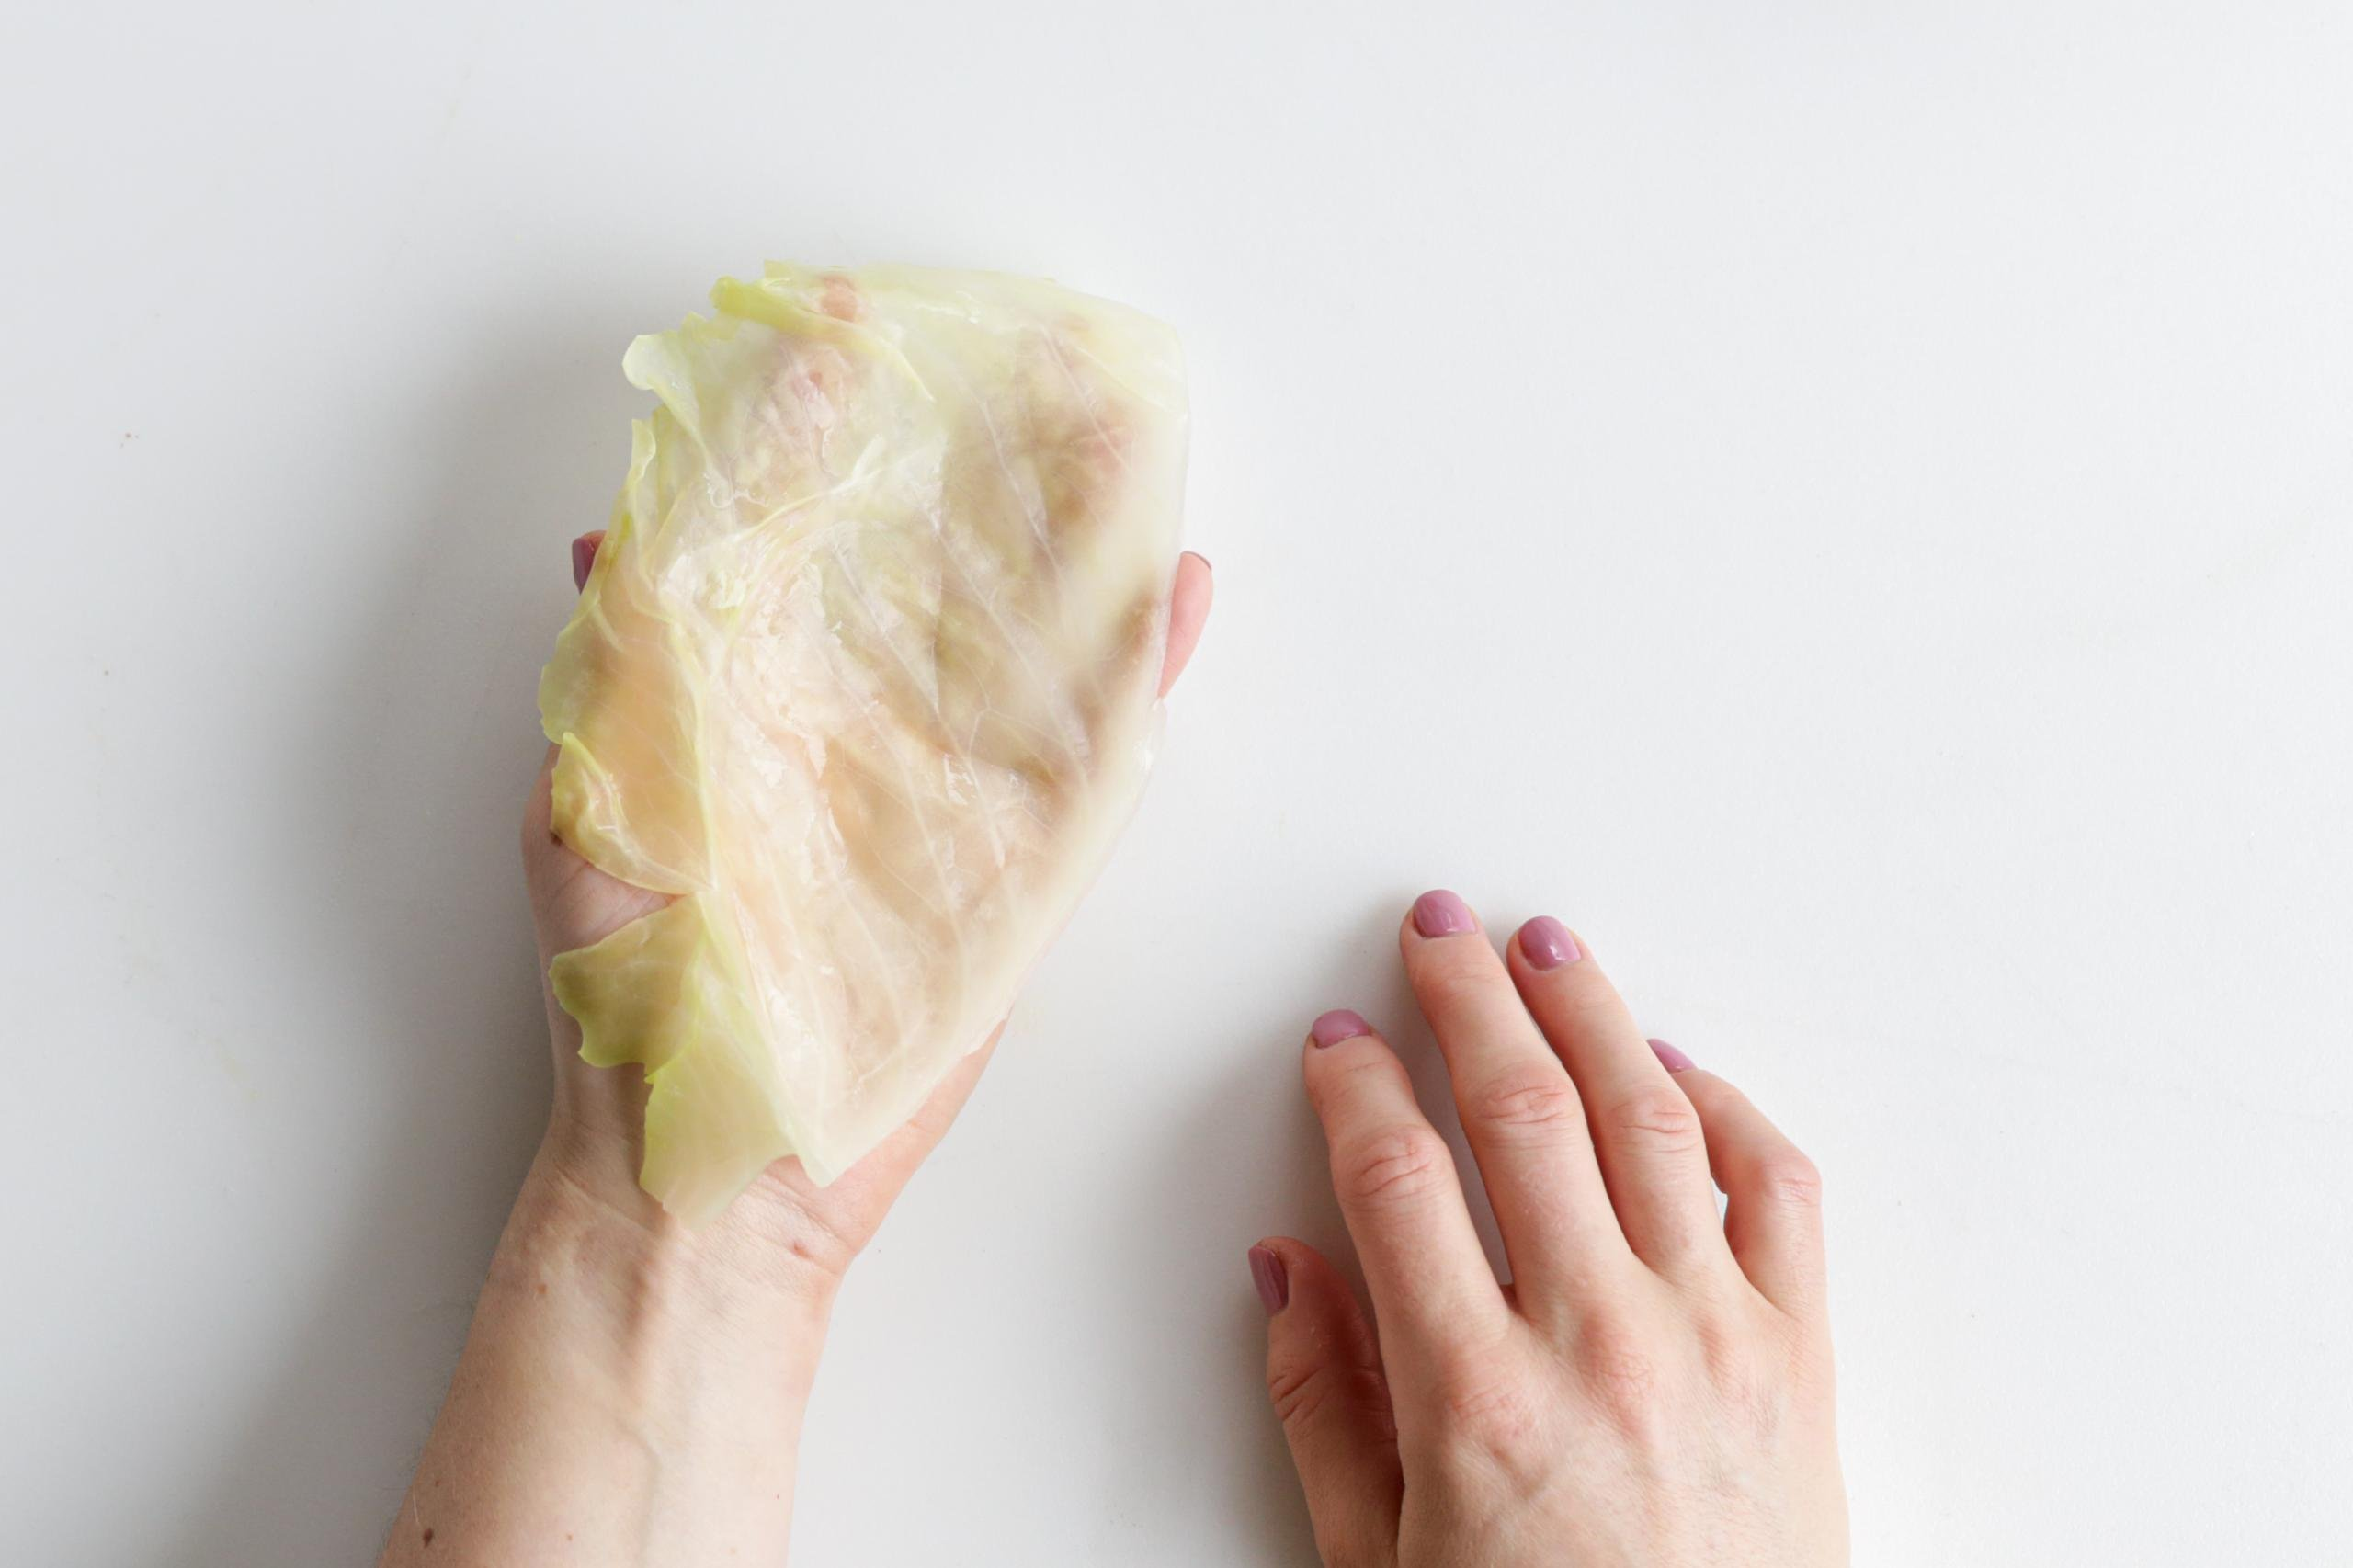 Cabbage leaf on a hand